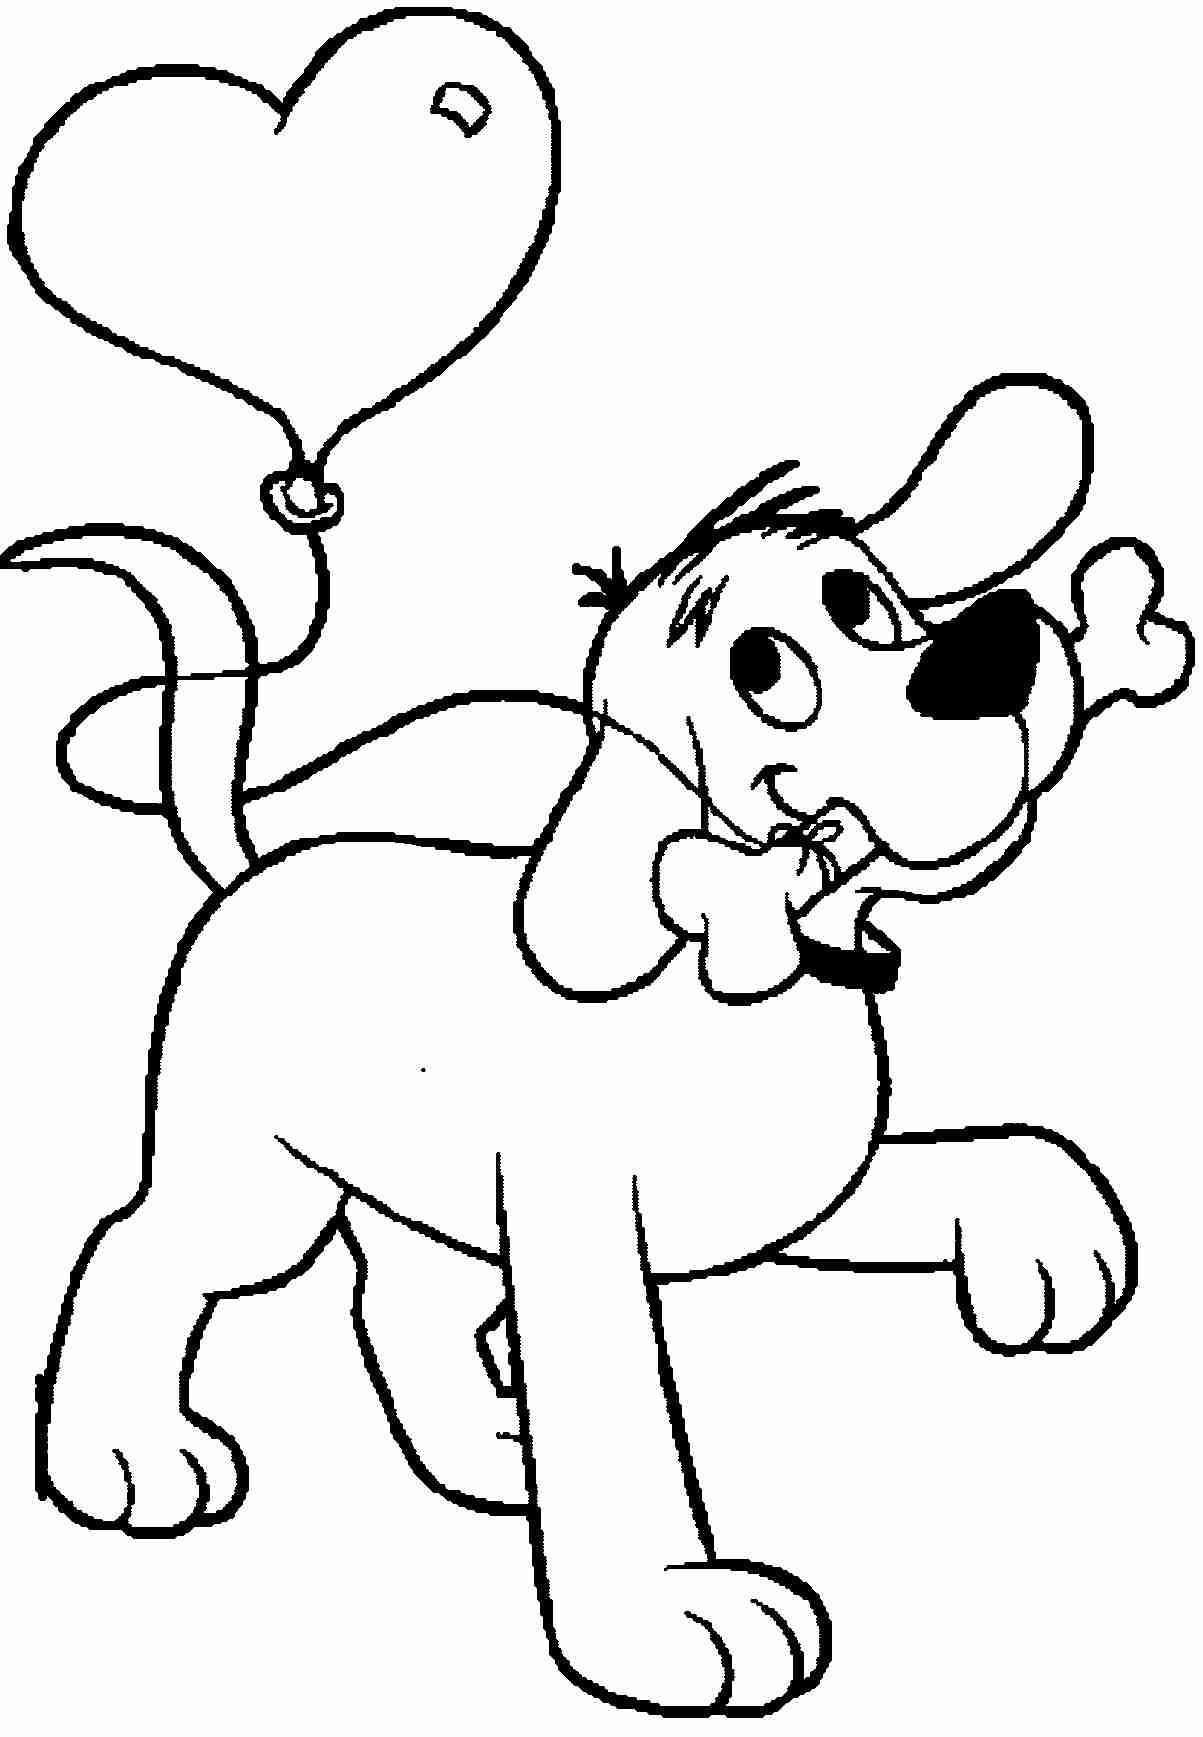 clifford coloring page clifford the big red dog coloring pages dog coloring clifford coloring page